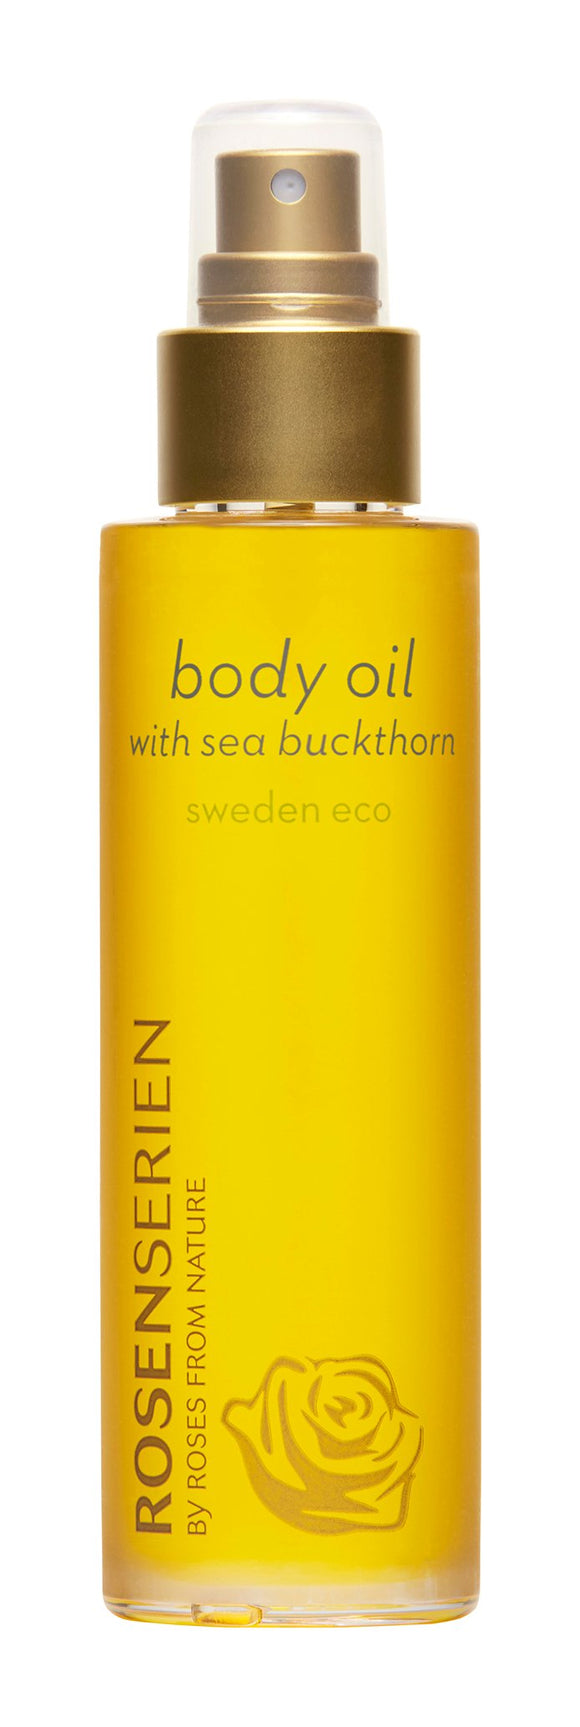 Body oil with sea buckthorn - Rosenserien